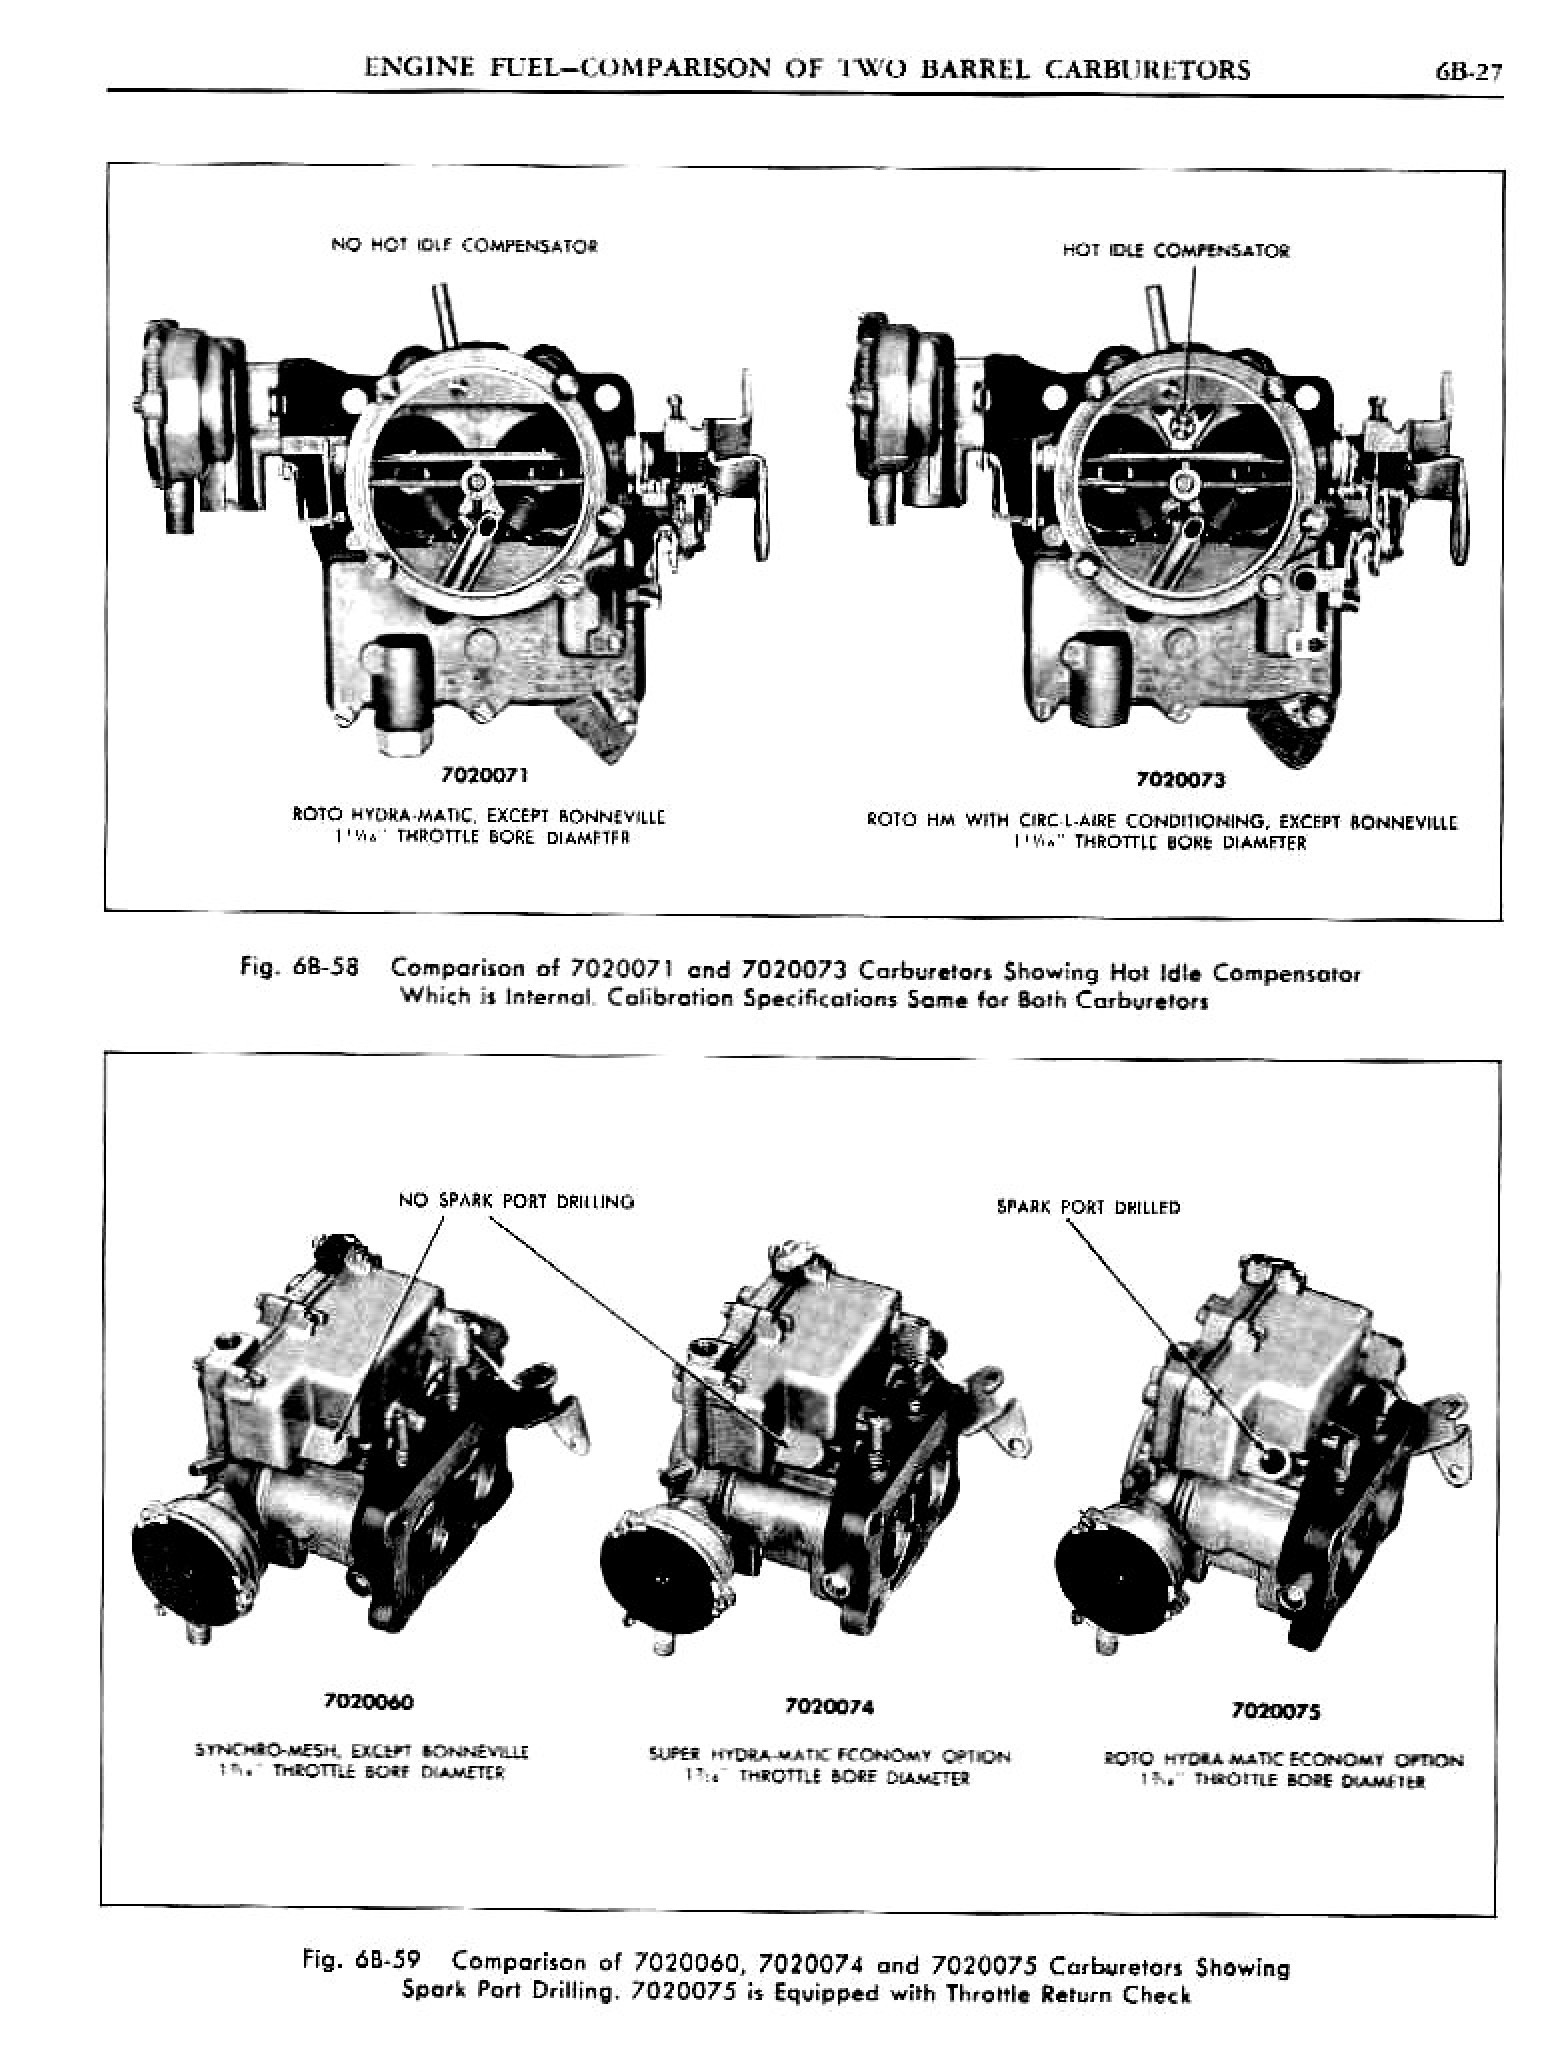 1962 Pontiac Chassis Service Manual- Engine Fuel Page 28 of 54